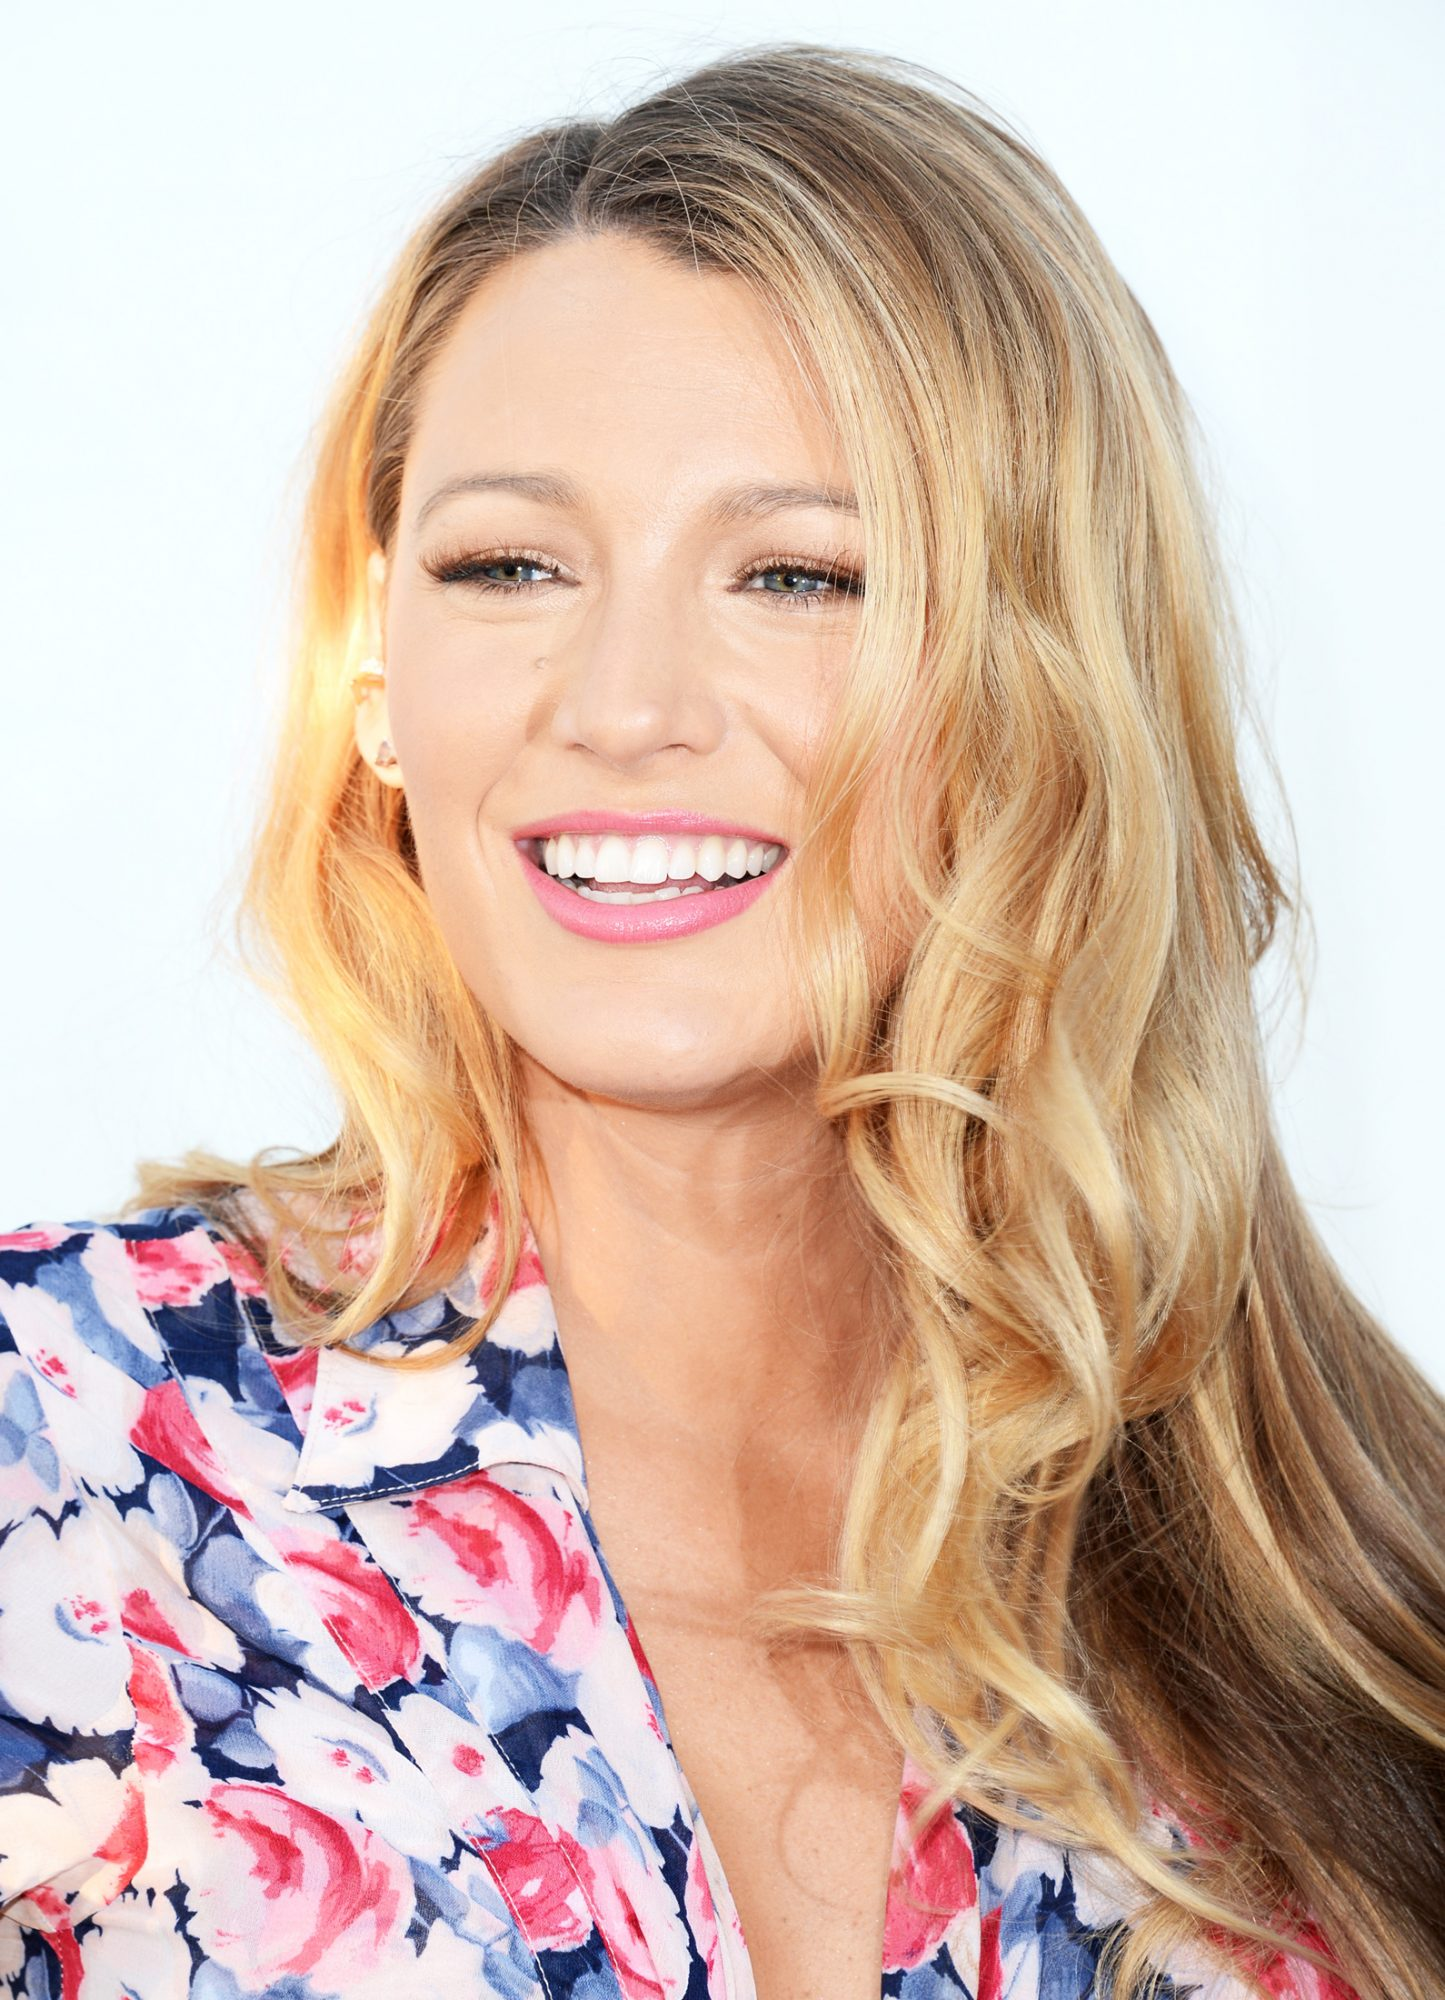 Blake Lively's Homemade Mixed Berry Shortcake Is the Stuff of Dessert Dreams